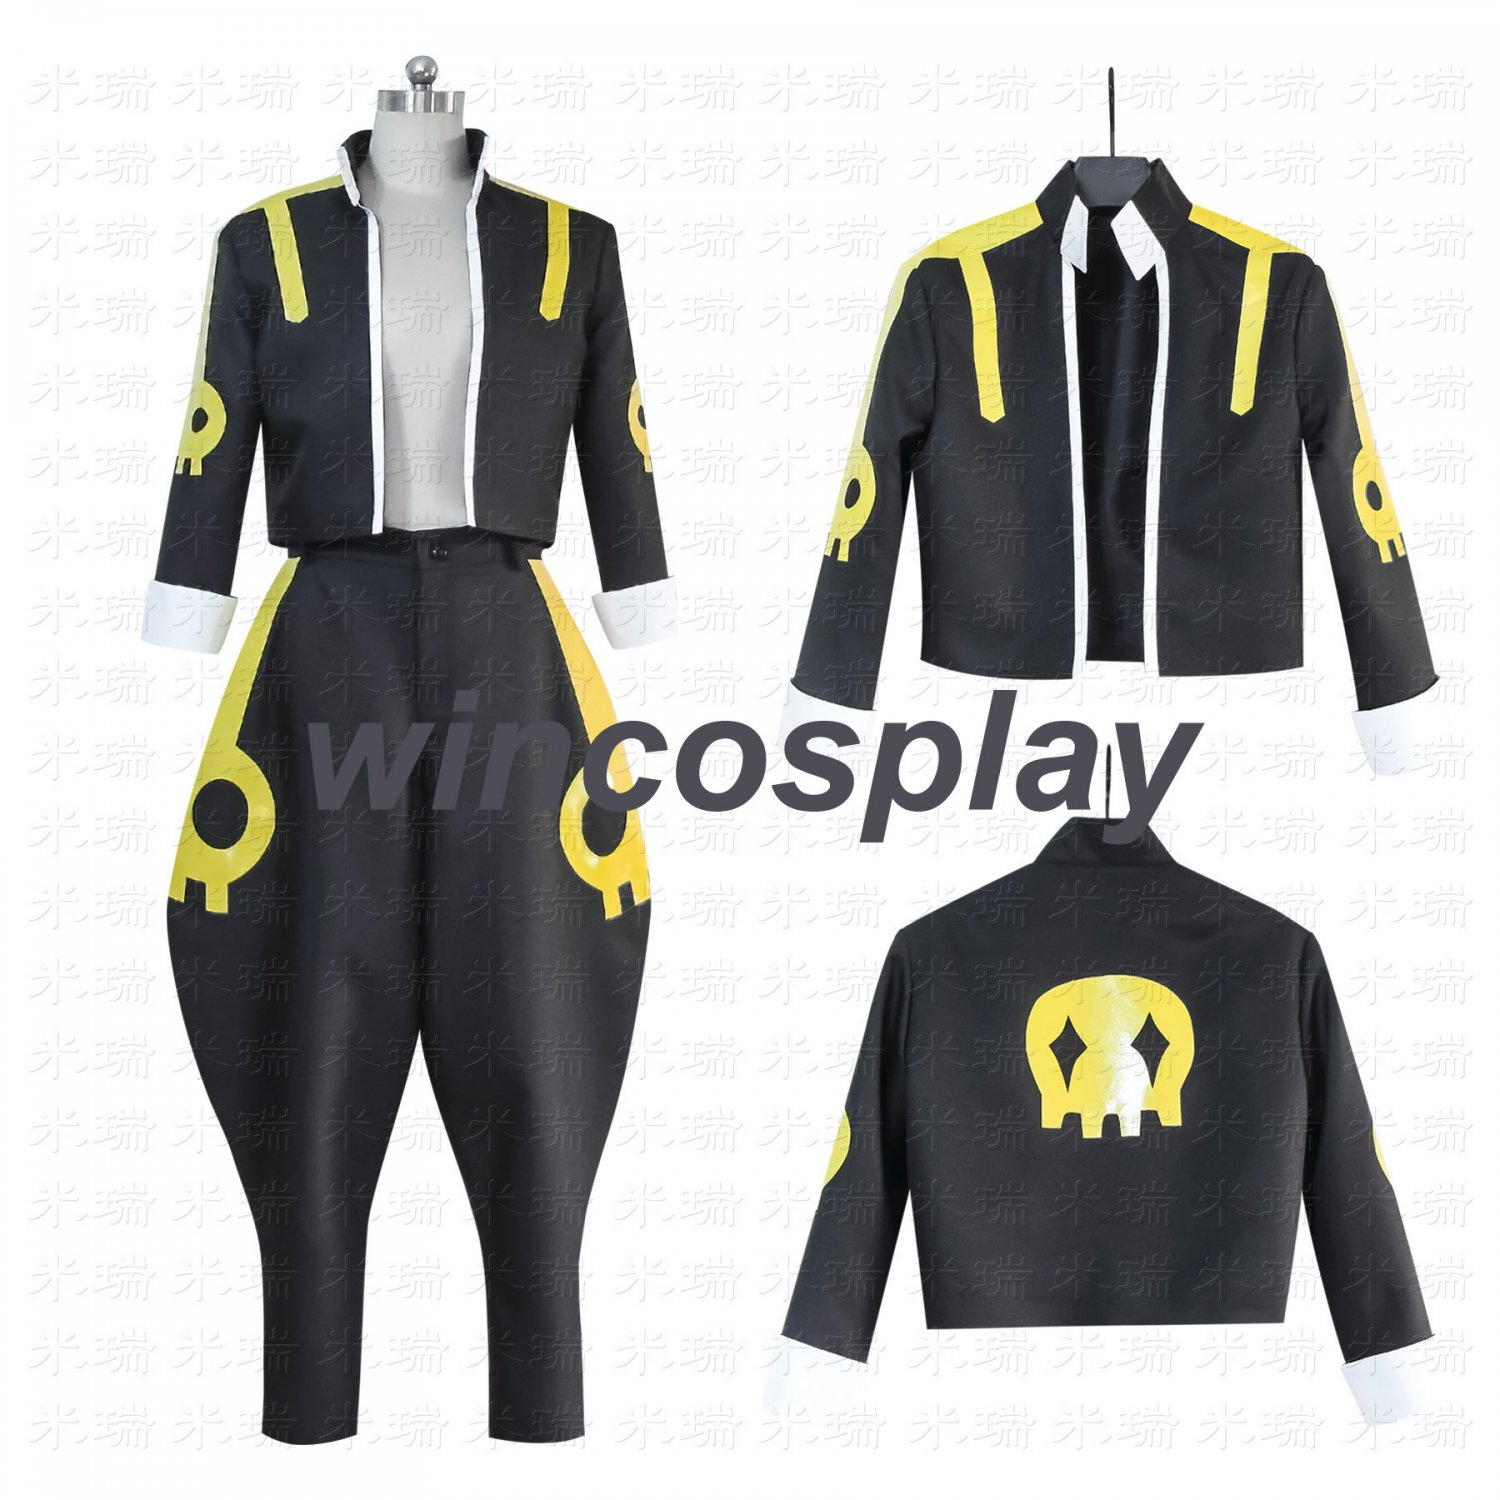 FAIRY TAIL Etherious Natsu Dragneel Cosplay Costume custom made for men halloween costume